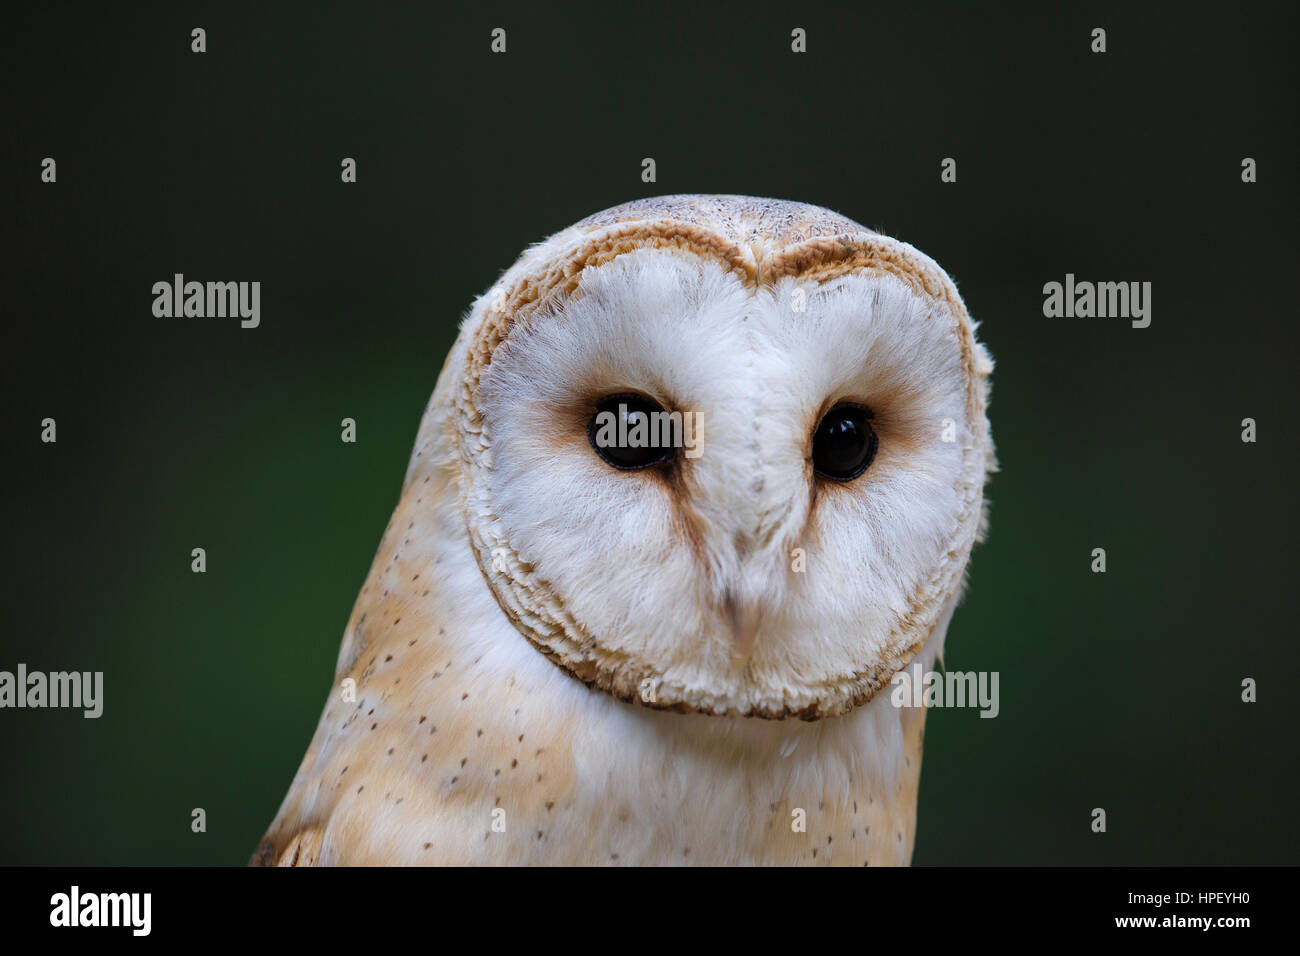 Barn owl (Tyto alba) close up portrait showing prominent facial disc - Stock Image